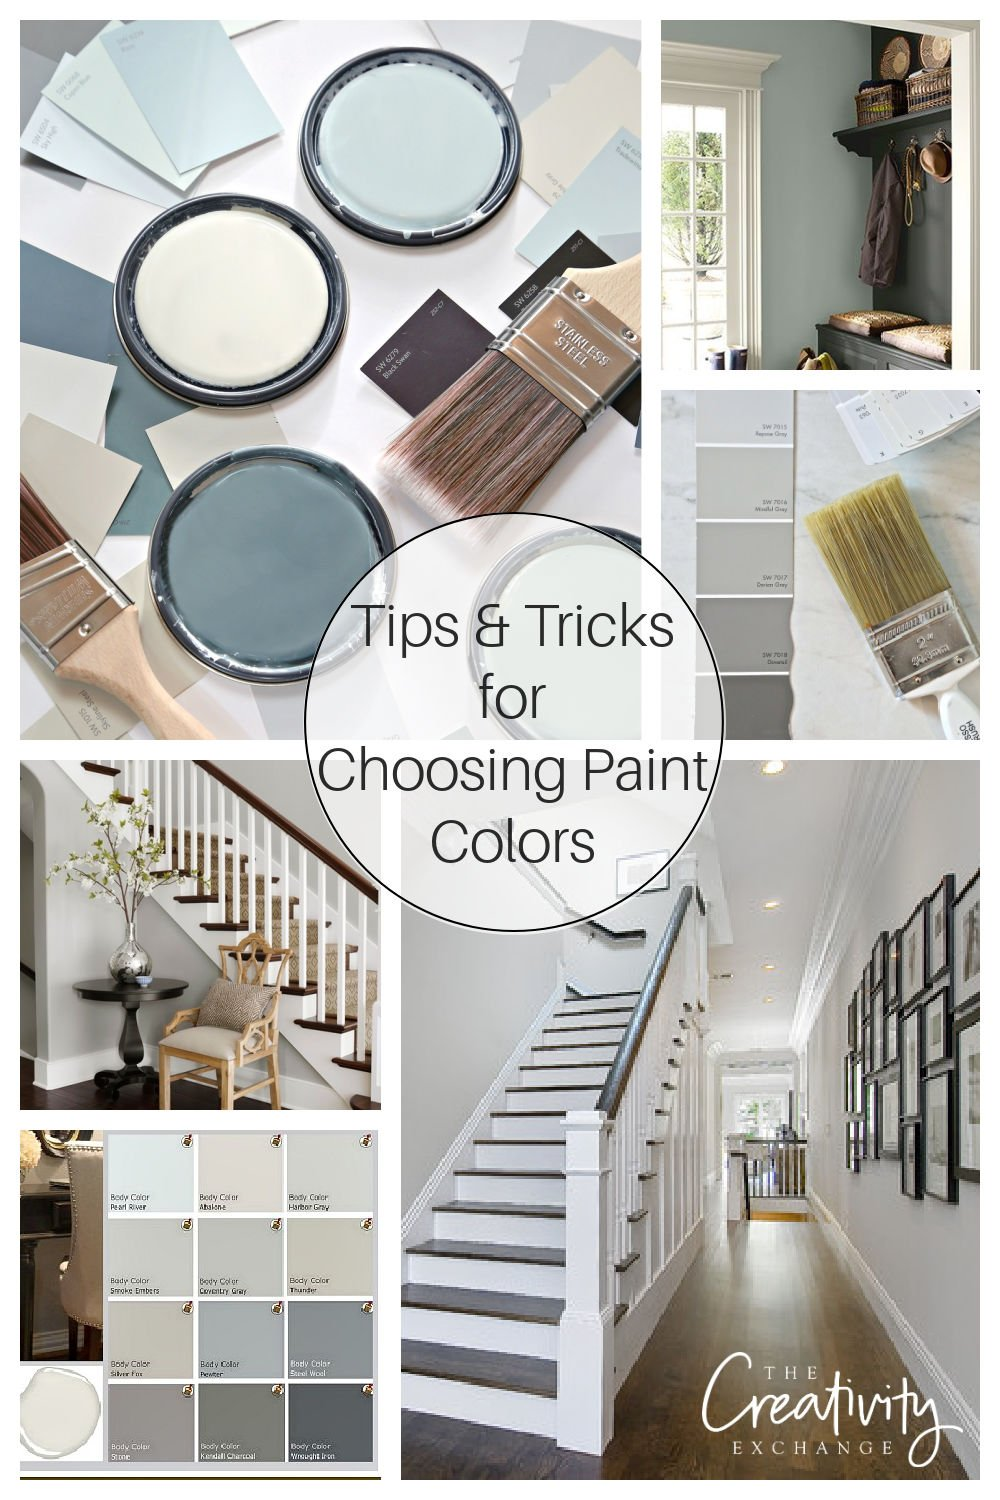 Tips and Tricks for Choosing Paint Colors